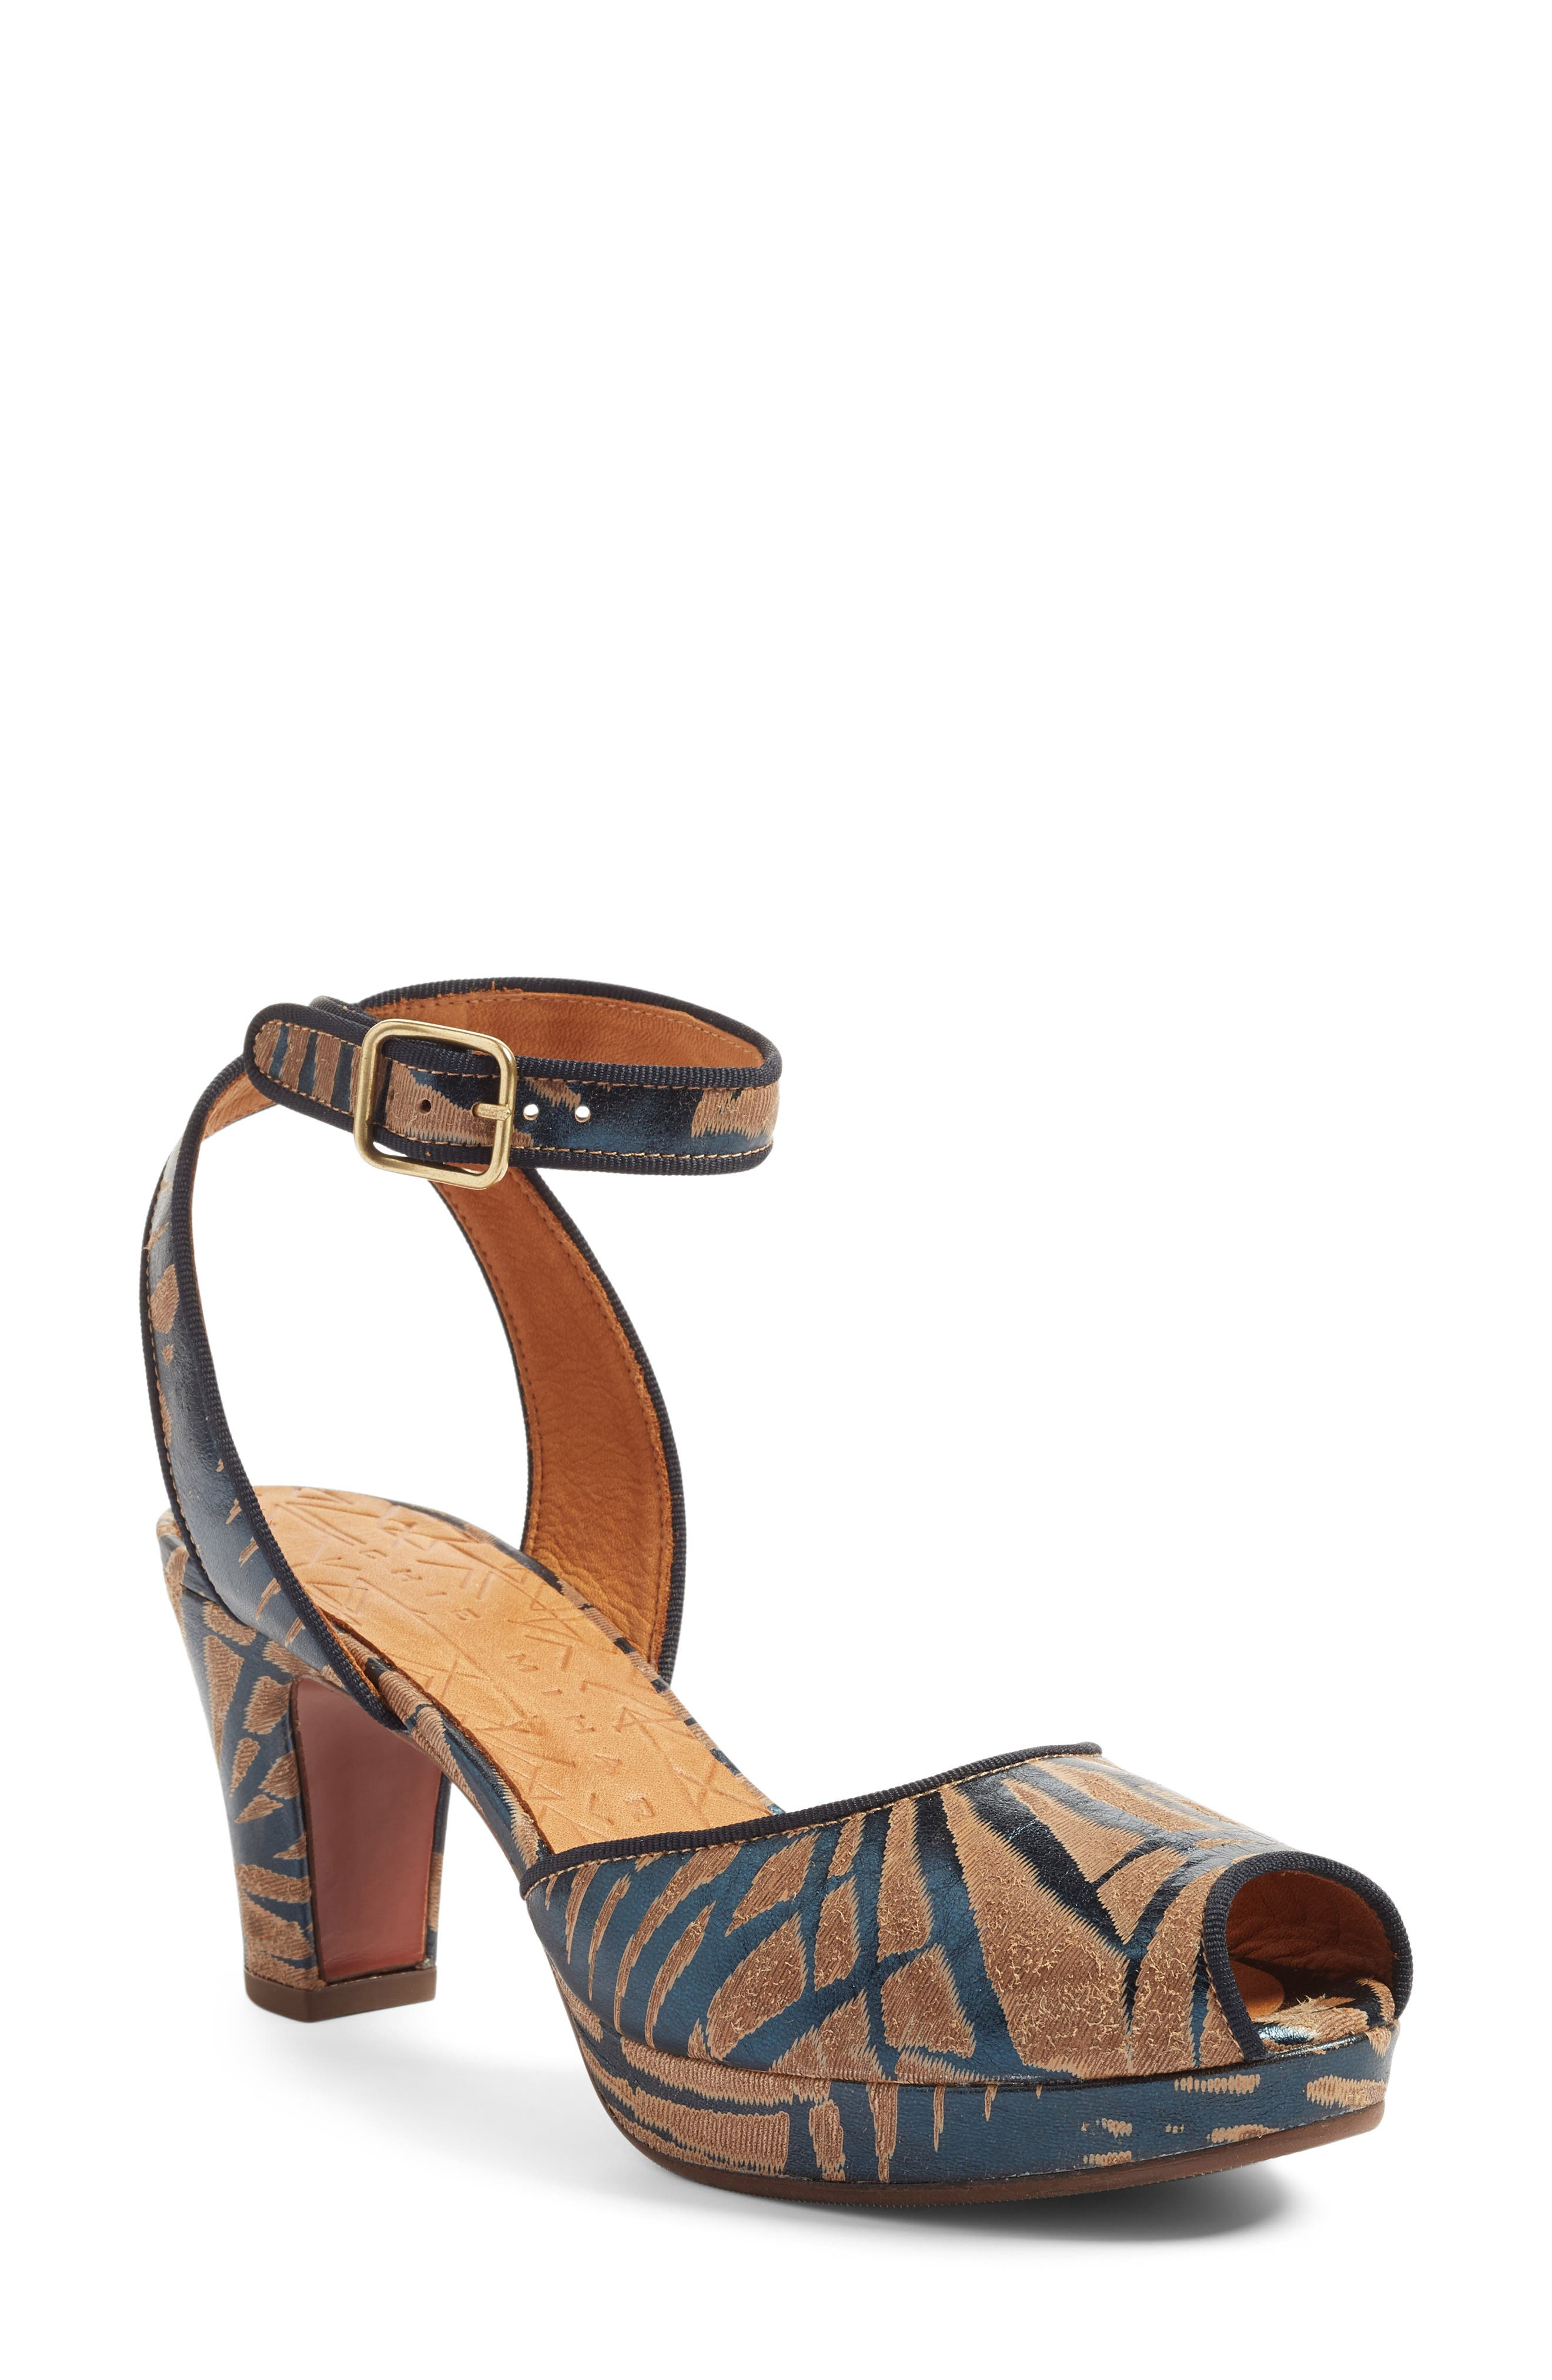 Inara Sandal,                         Main,                         color, 020